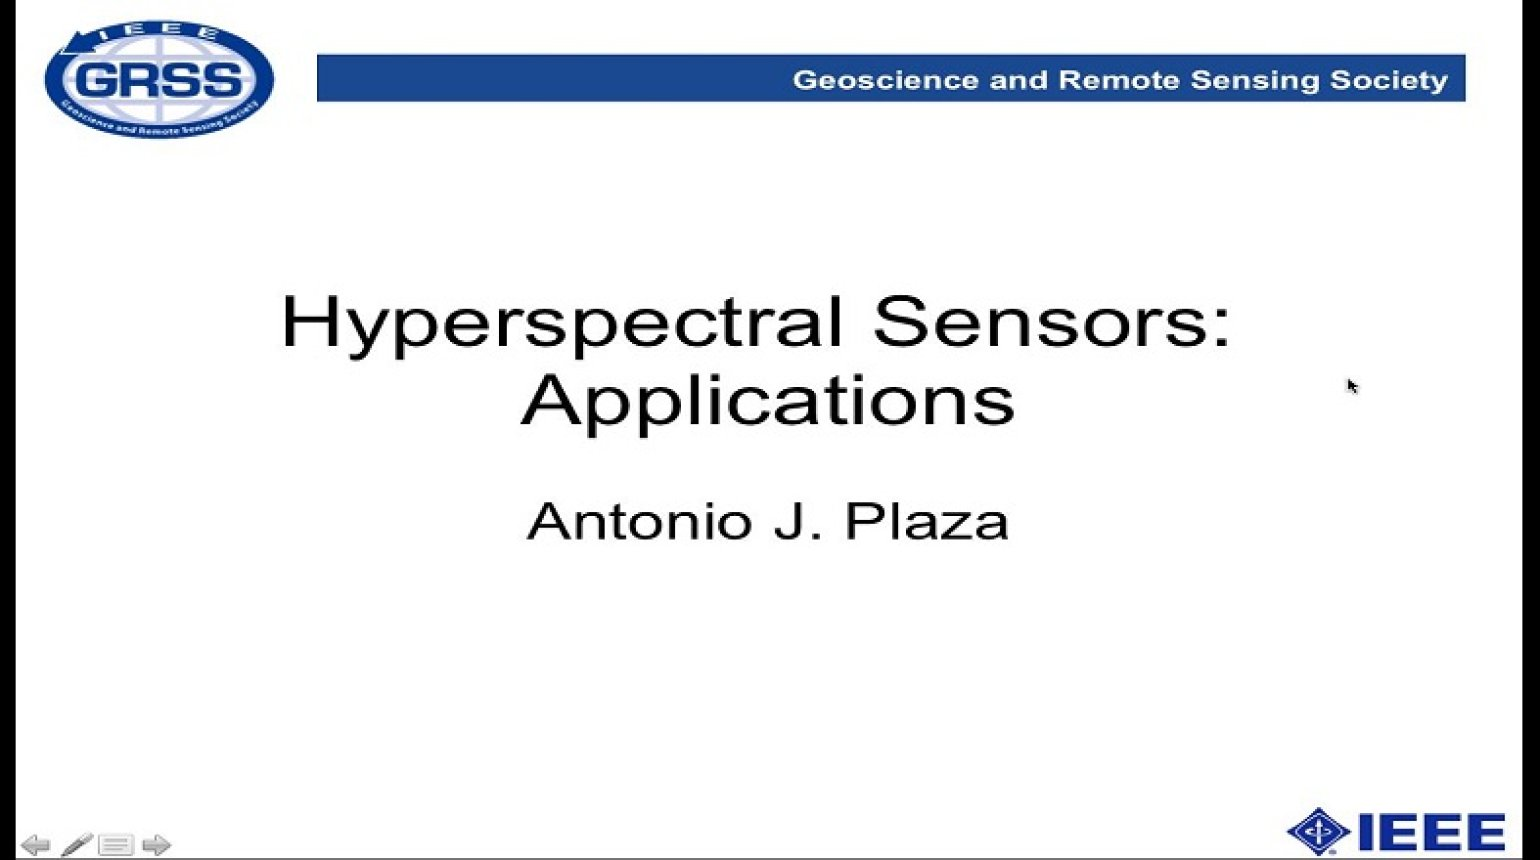 Hyperspectral Sensors: Applications